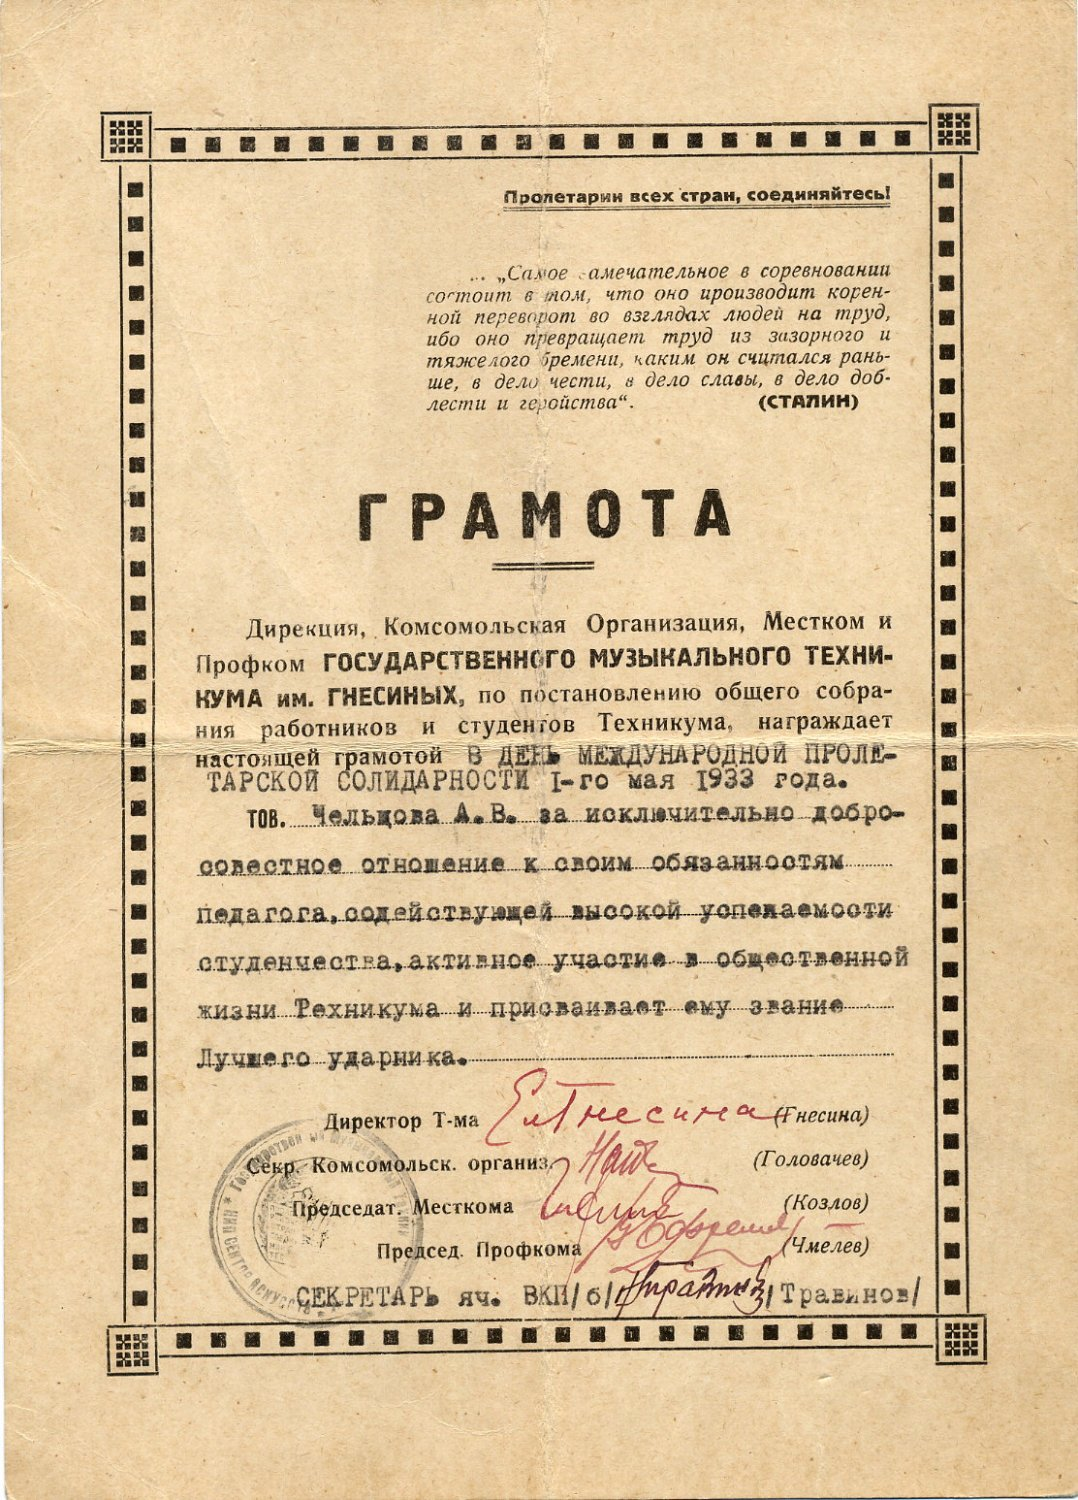 Russian Pianist & Founder of Gnesin Academy ELENA GNESINA Signed Diploma 1933